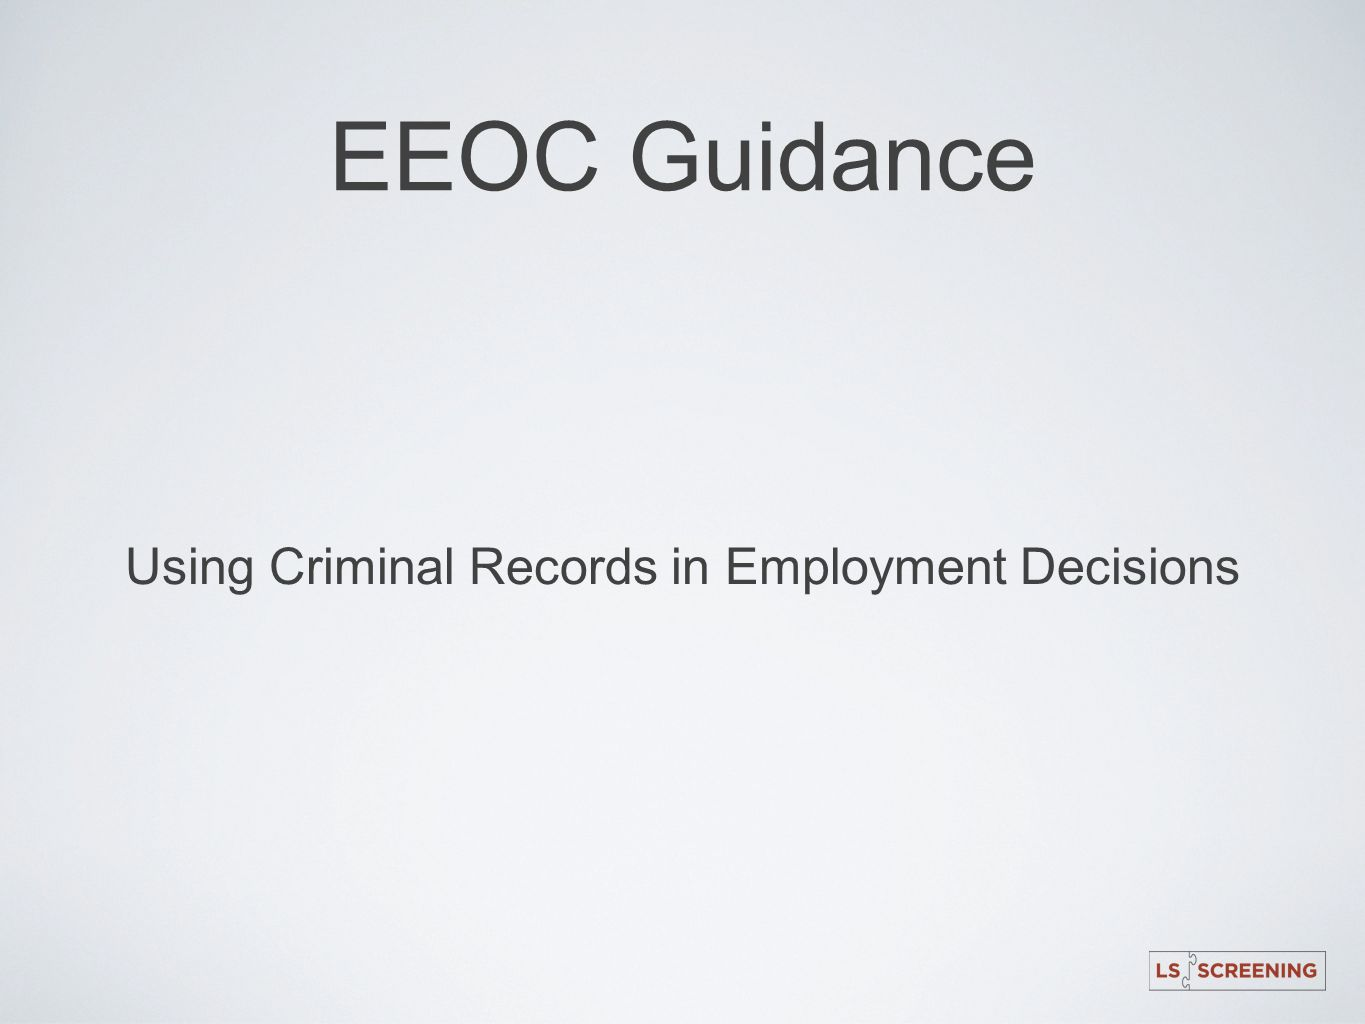 Using Criminal Records in Employment Decisions